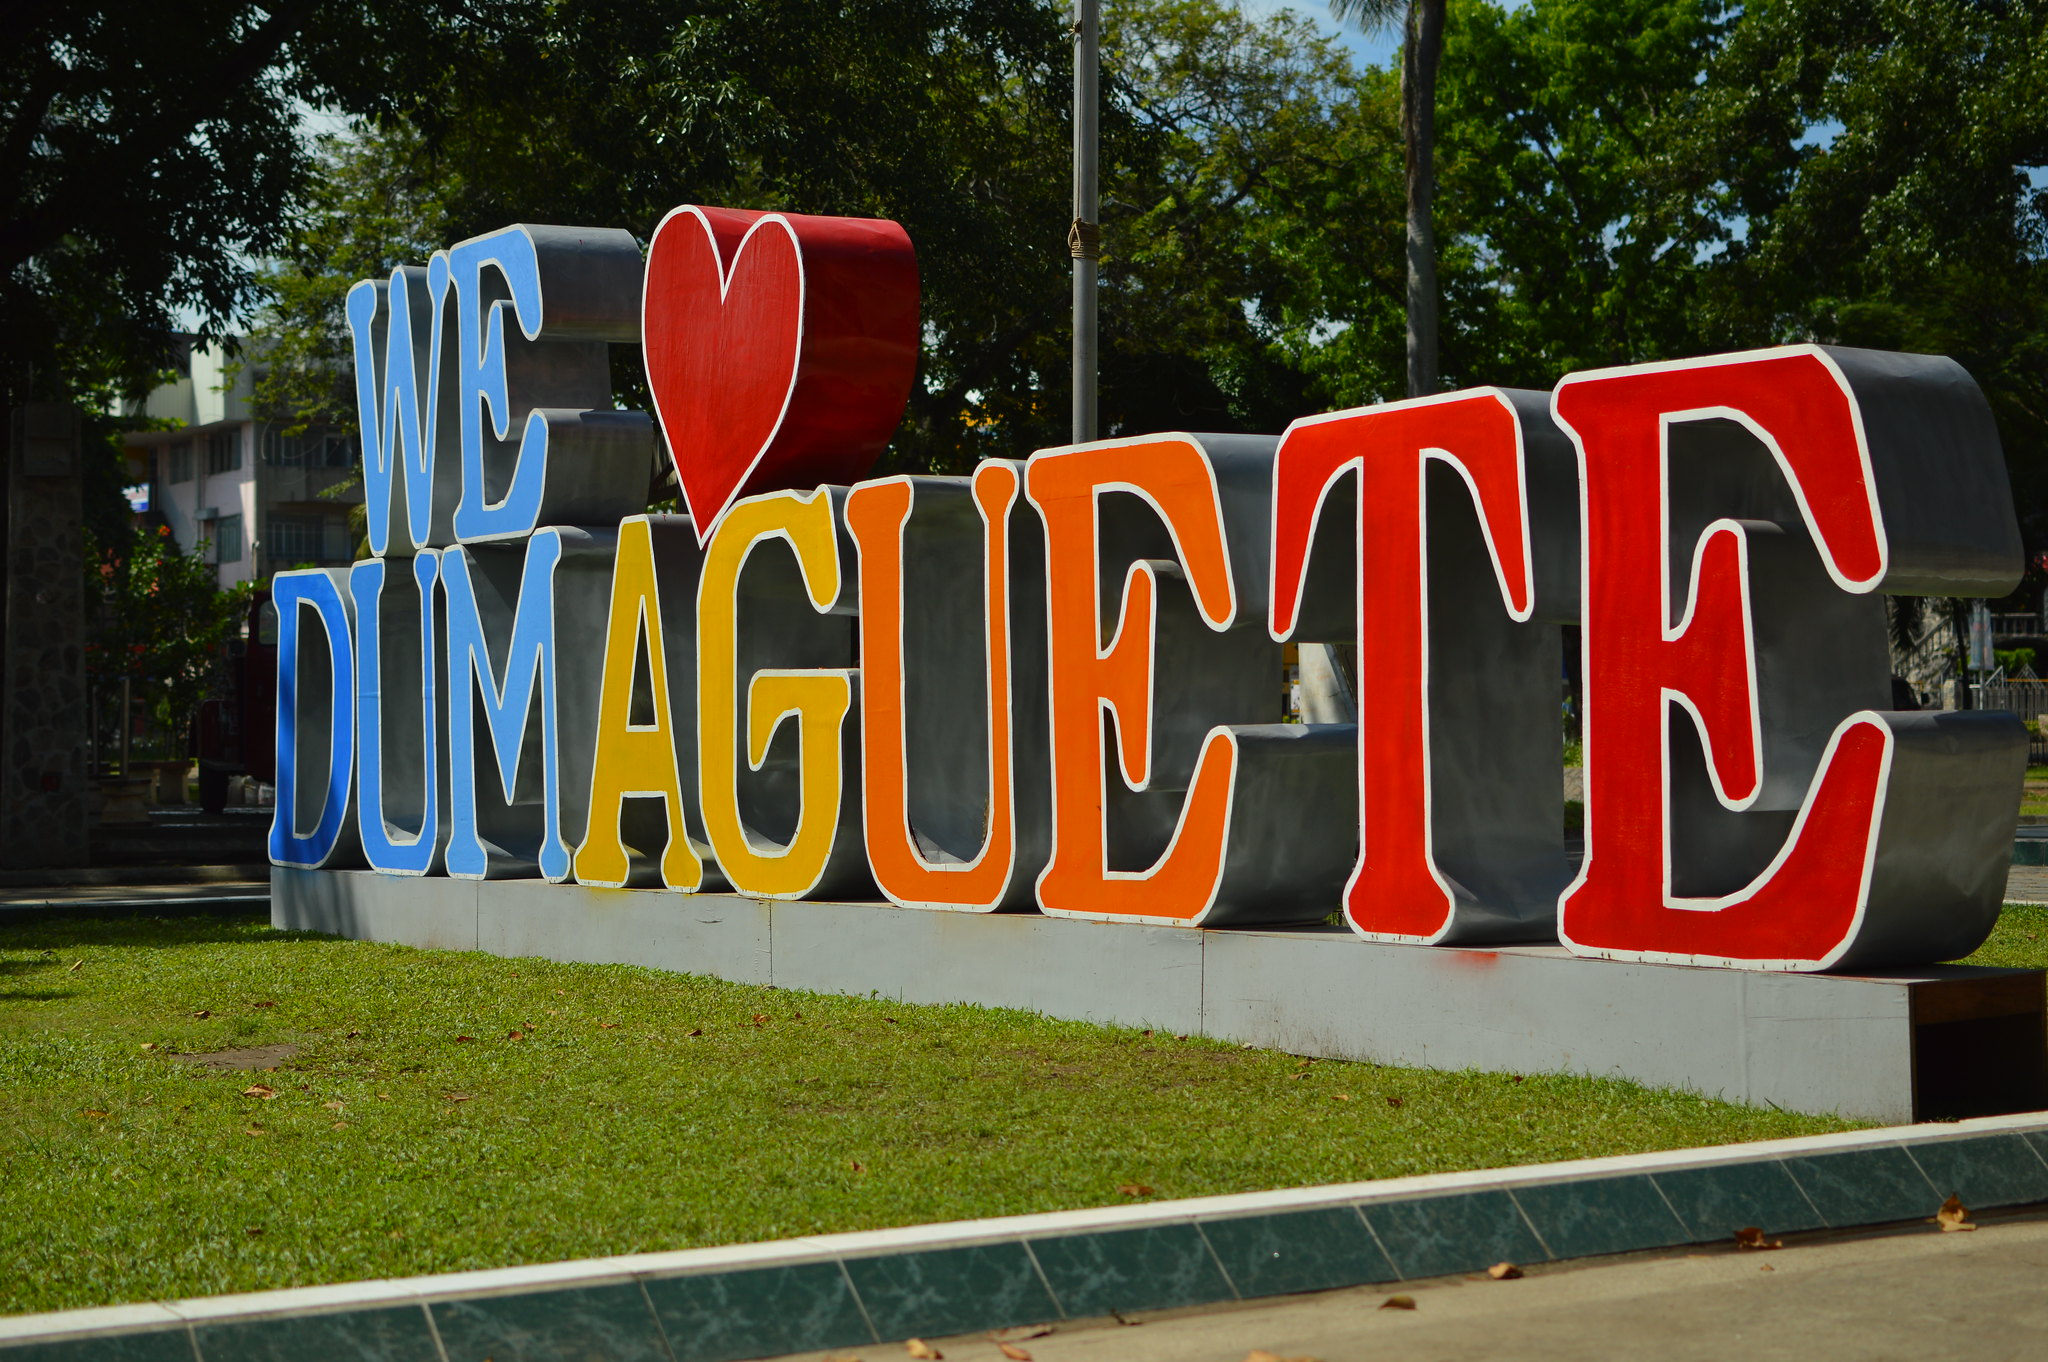 5 Things to Do near Dumaguete, Philippines